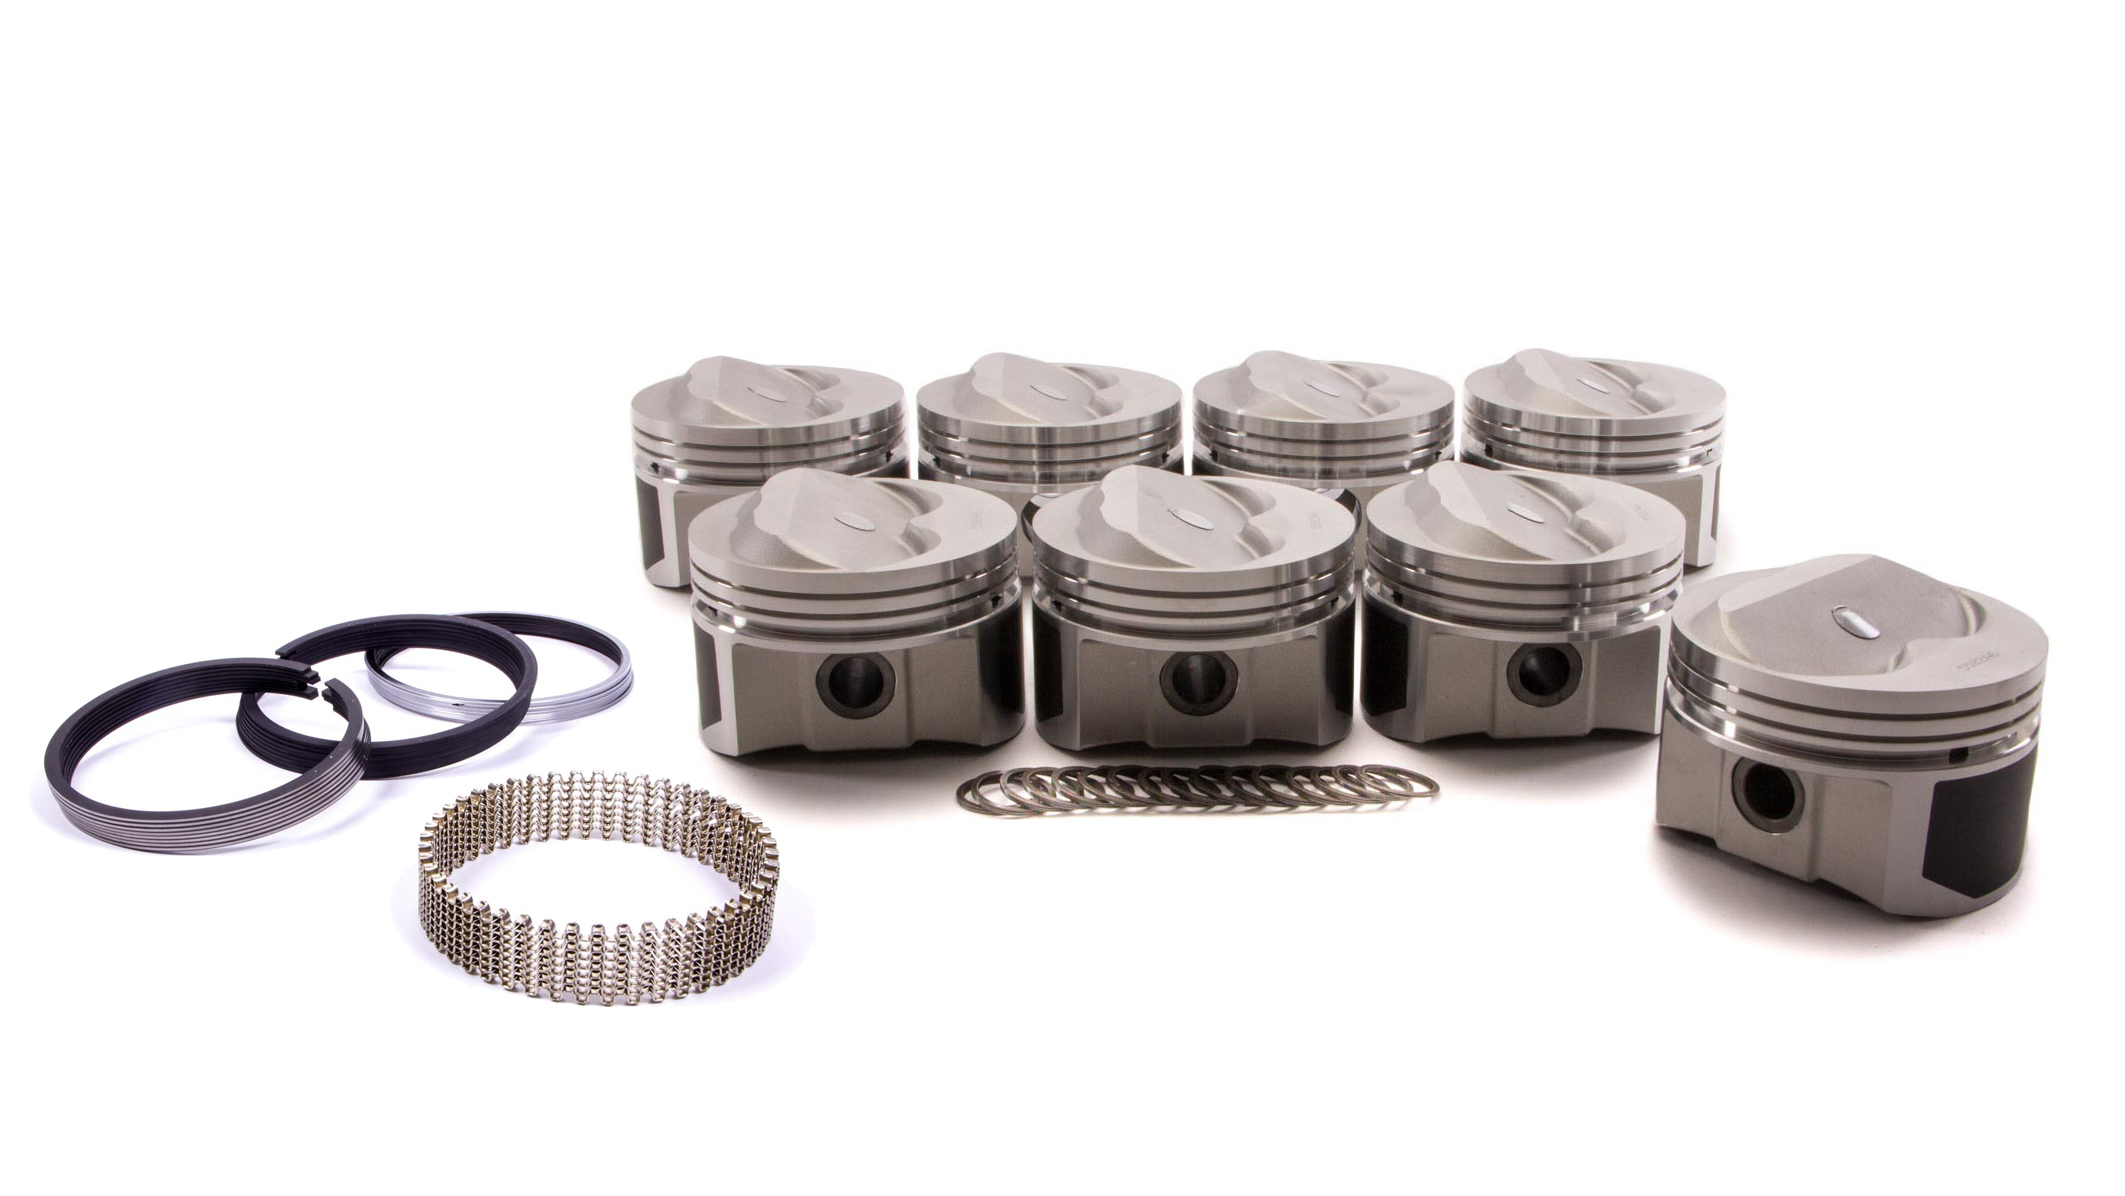 Wiseco Pro-Tru PTS502A6 Piston and Ring, 23 Degree Dome, Forged, 4.060 in Bore, 1/16 x 1/16 x 3/16 in Ring Grooves, Plus 8.0 cc, Small Block Chevy, Kit